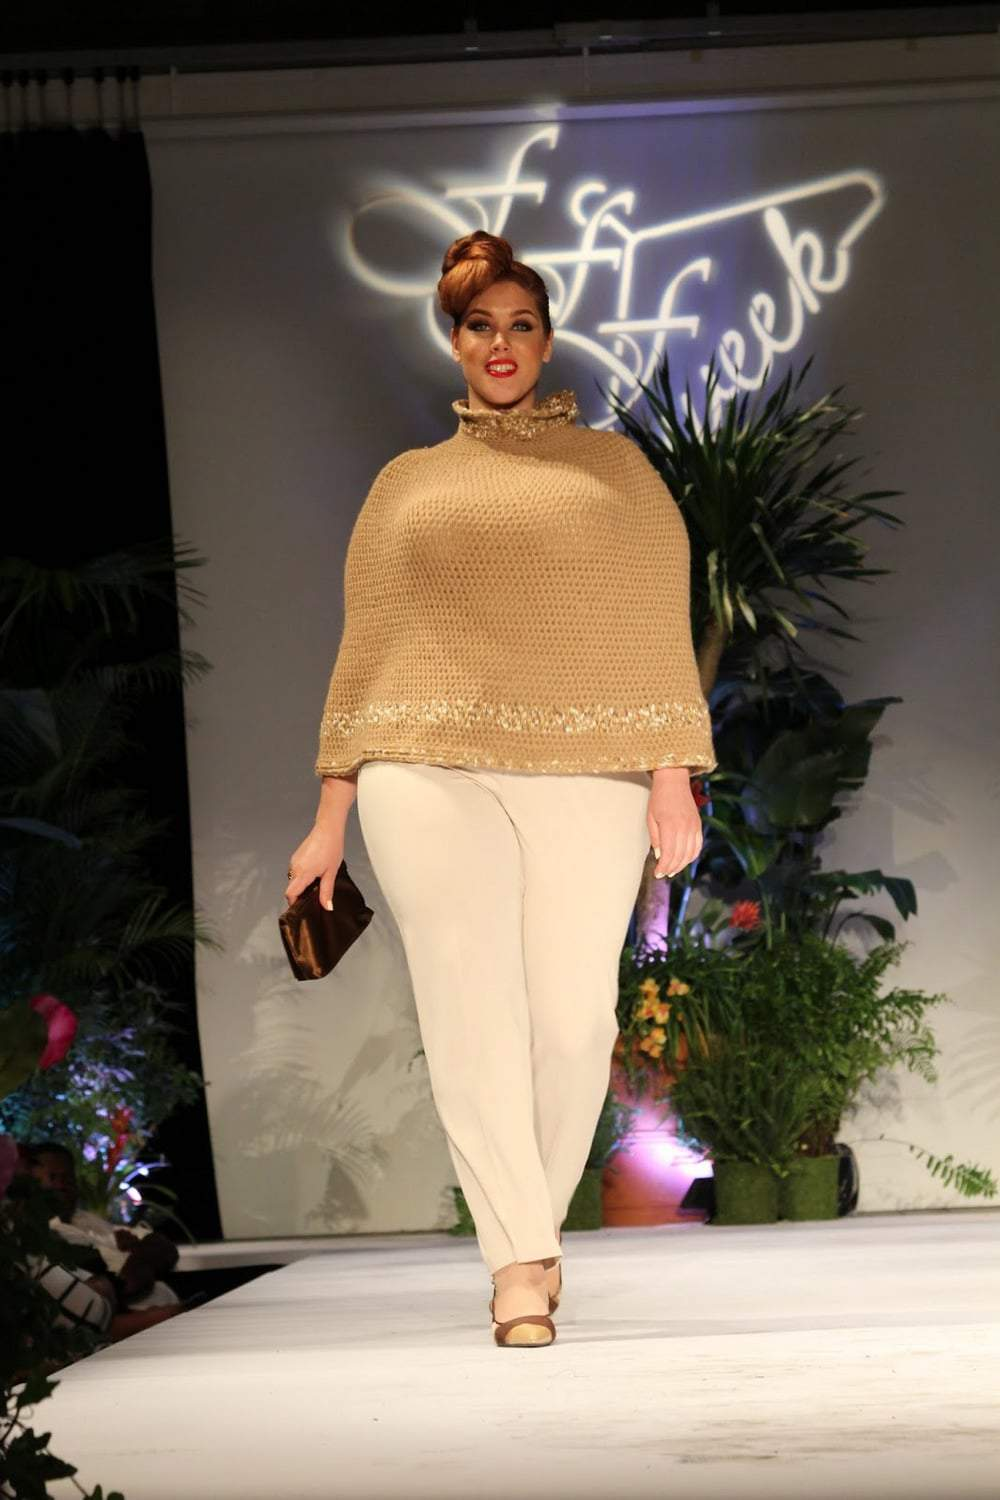 Sue Rock Originals at Full Figured Fashion Week 2015